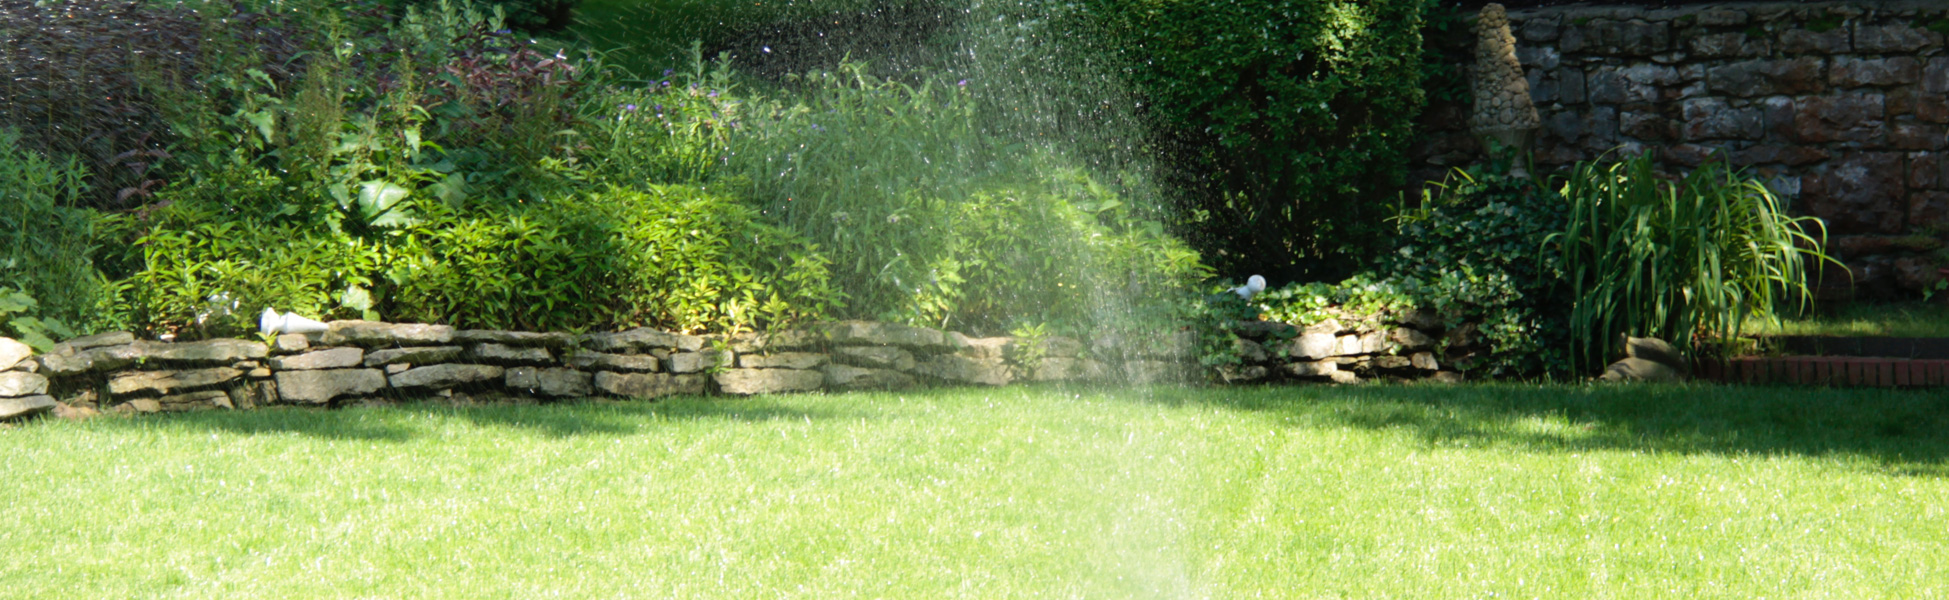 Are You Ready for Spring Sprinkler Season?